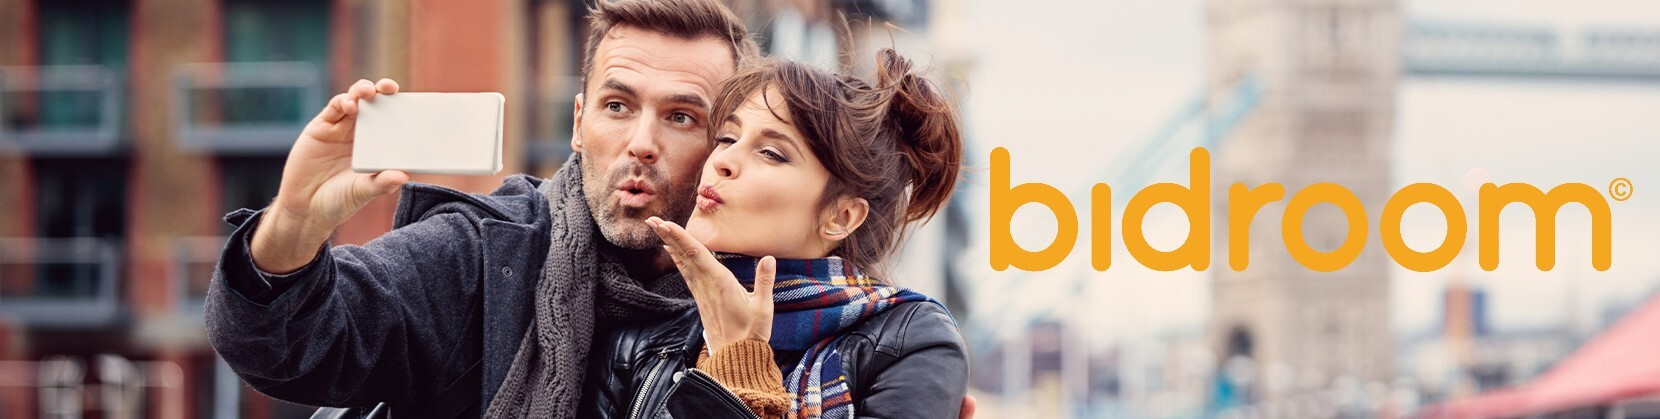 Bidroom: find out this amazing service